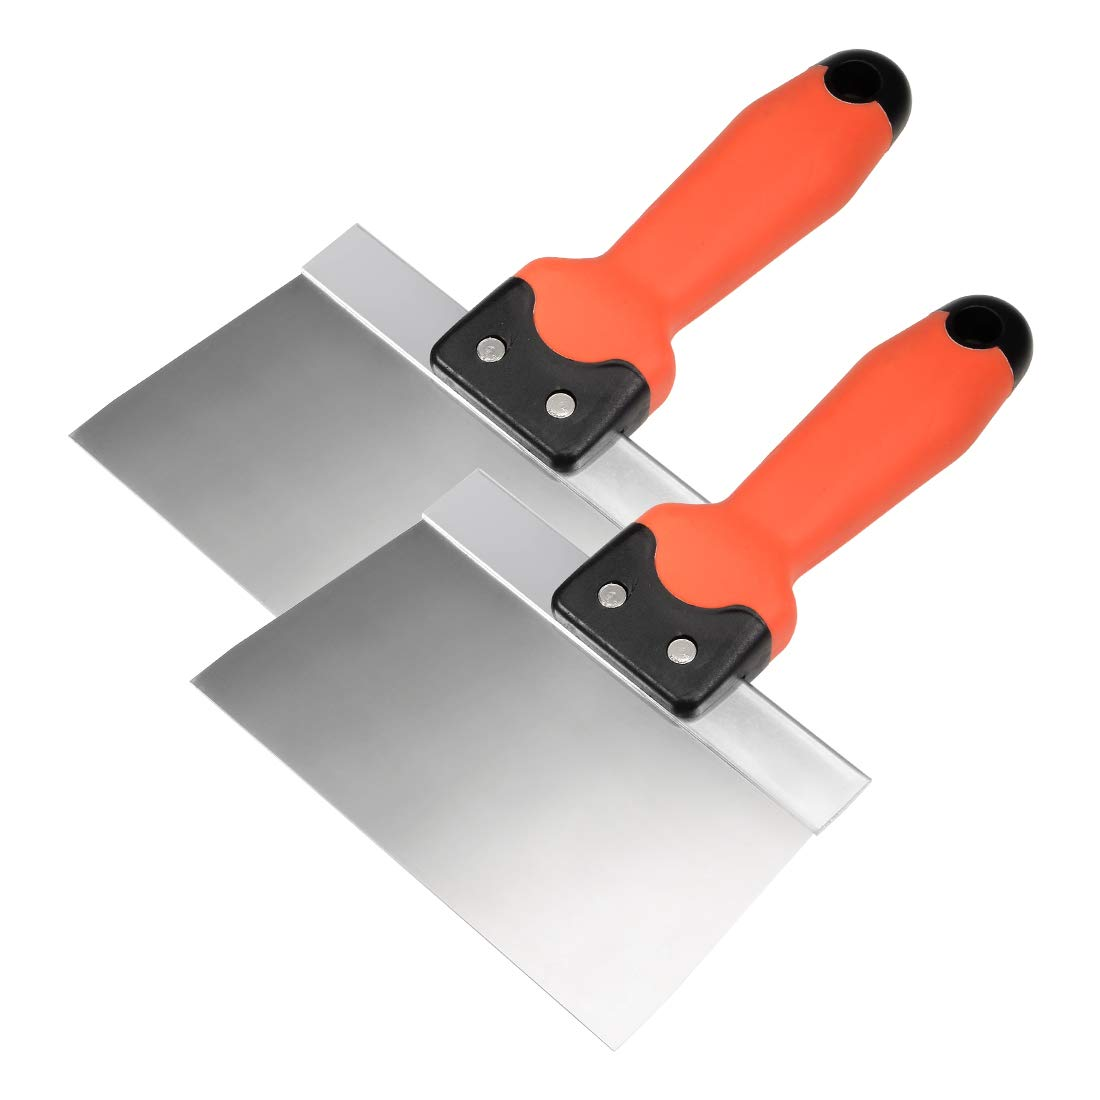 uxcell/® Putty Taping Paint Scraper 8 Stainless Steel Broad Blade with Plastic Ergonomic Handle for Wall Floor Tile